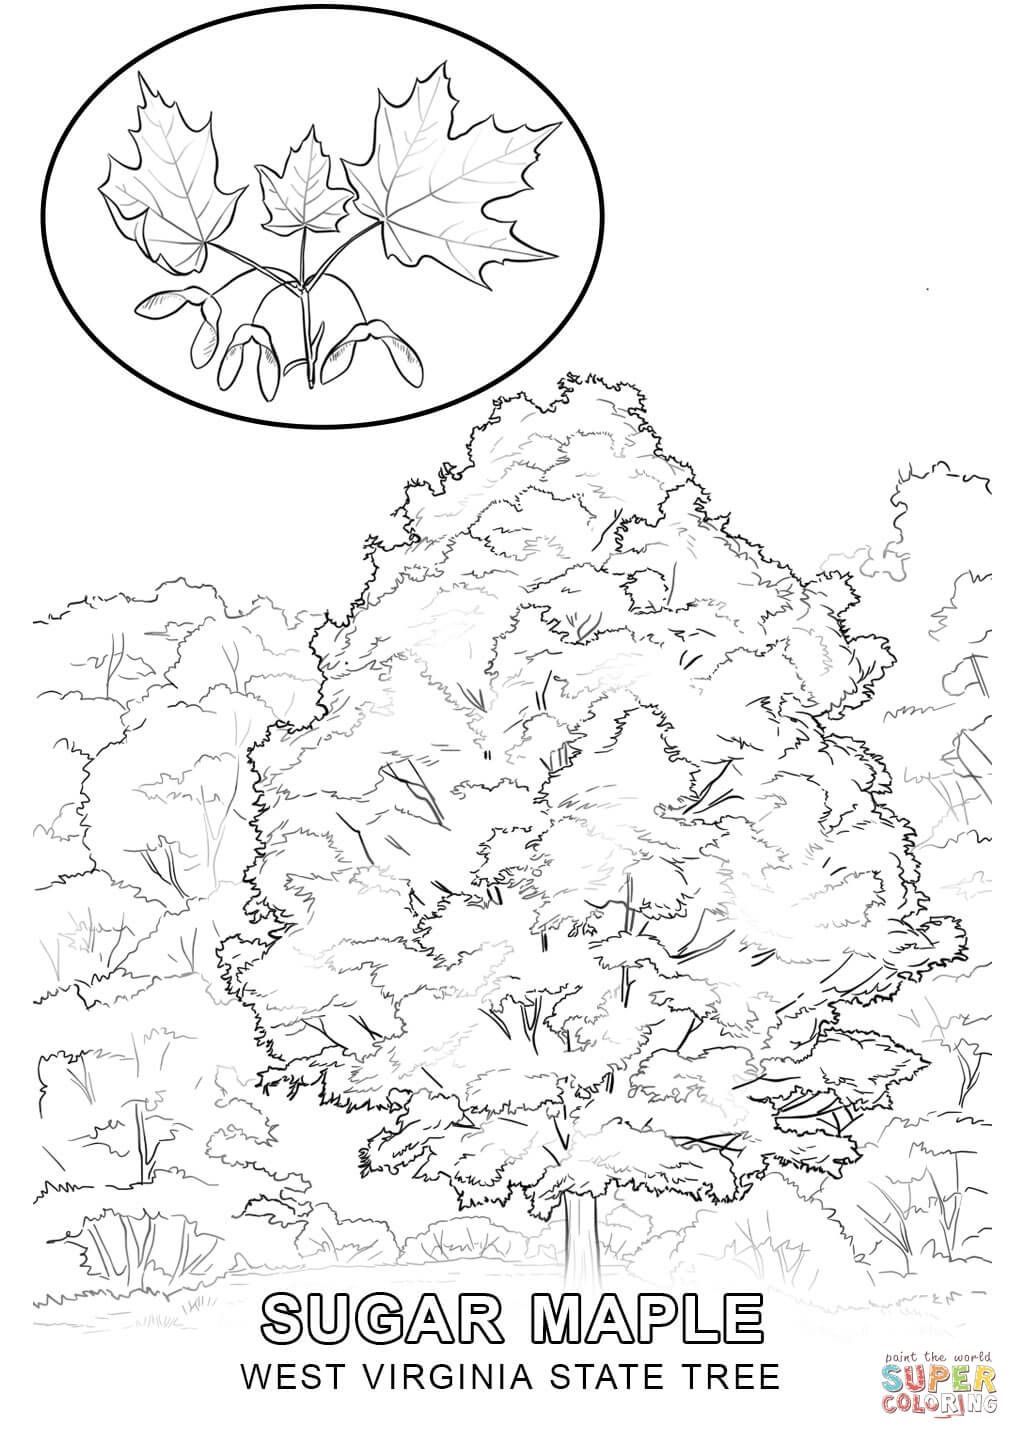 West Virginia State Tree Coloring Pages West Virginia Map